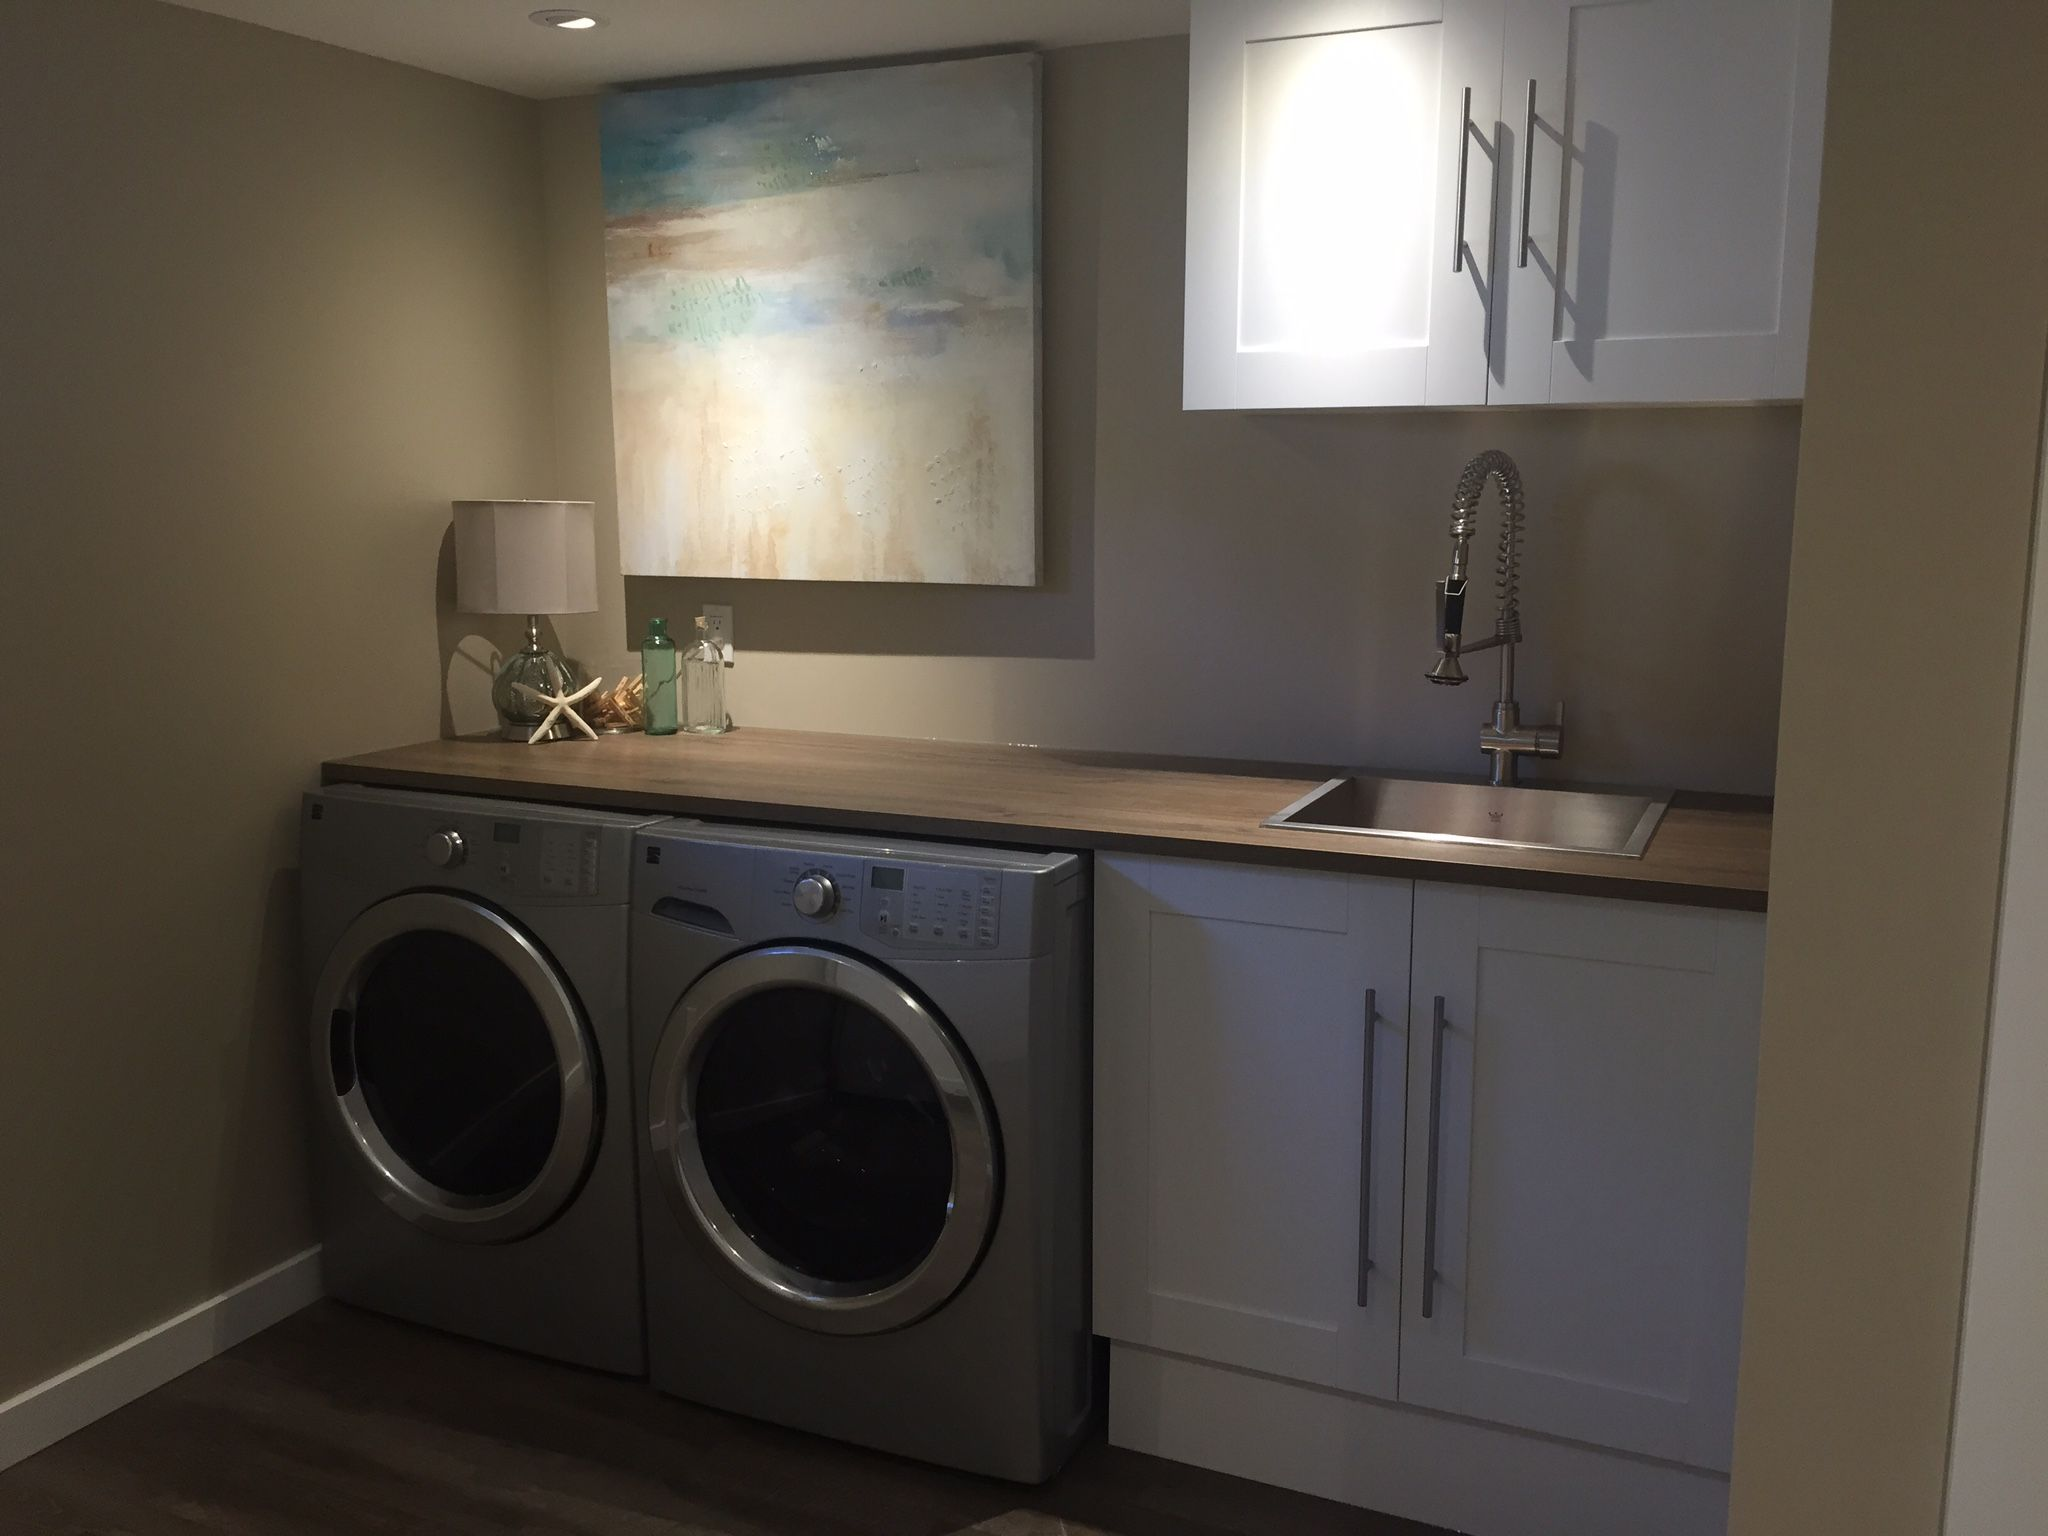 Laundry room Hide electrical panel behind a canvas